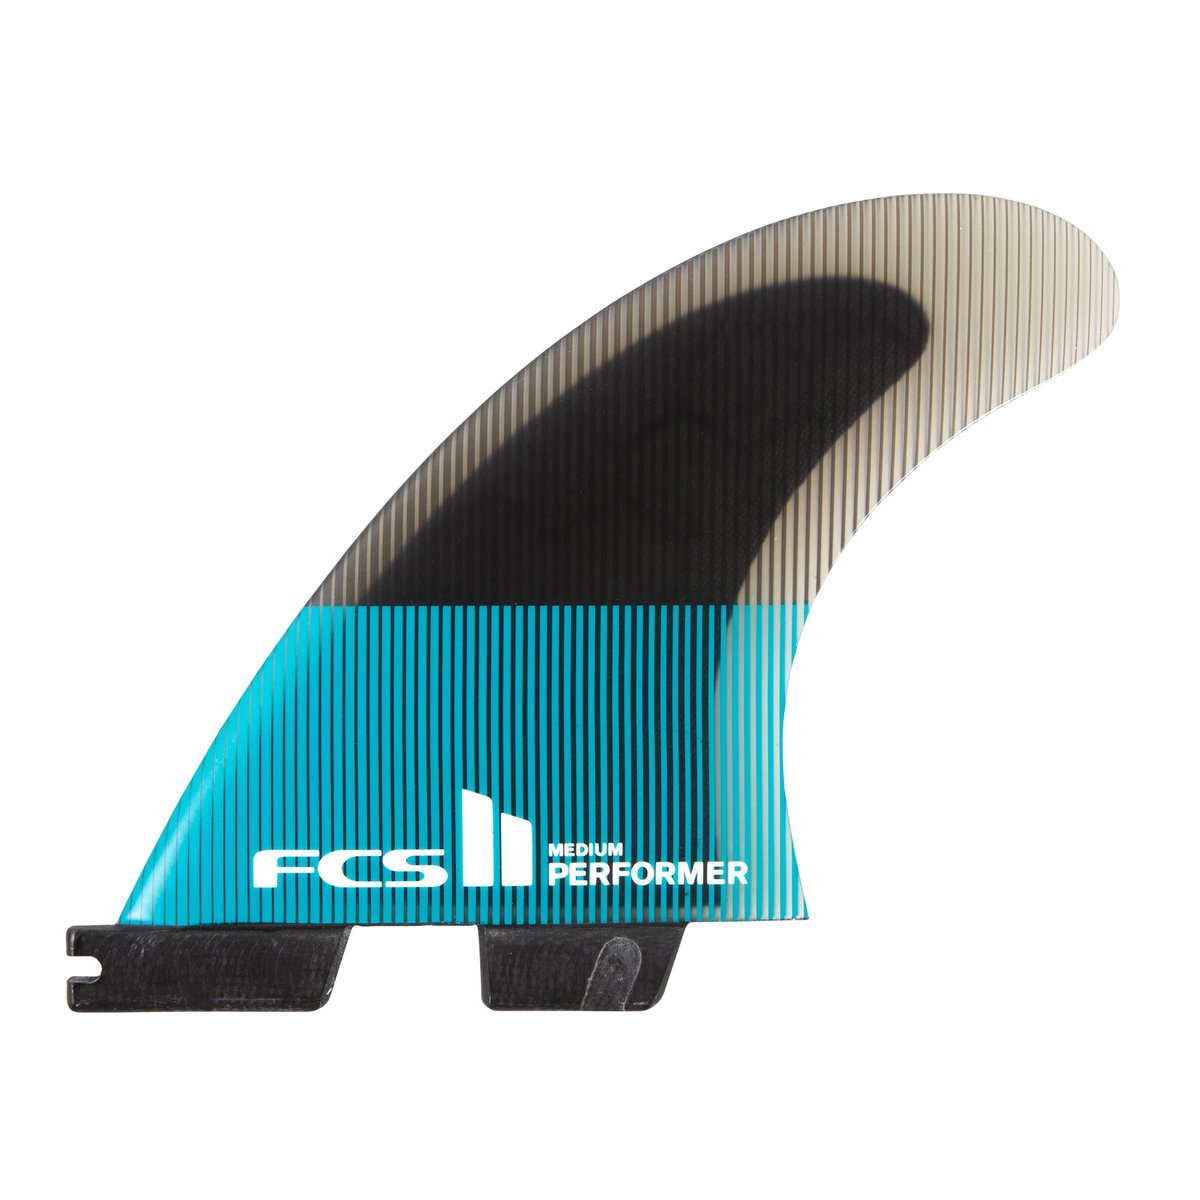 FCSII Performer PC Tri Fin Set